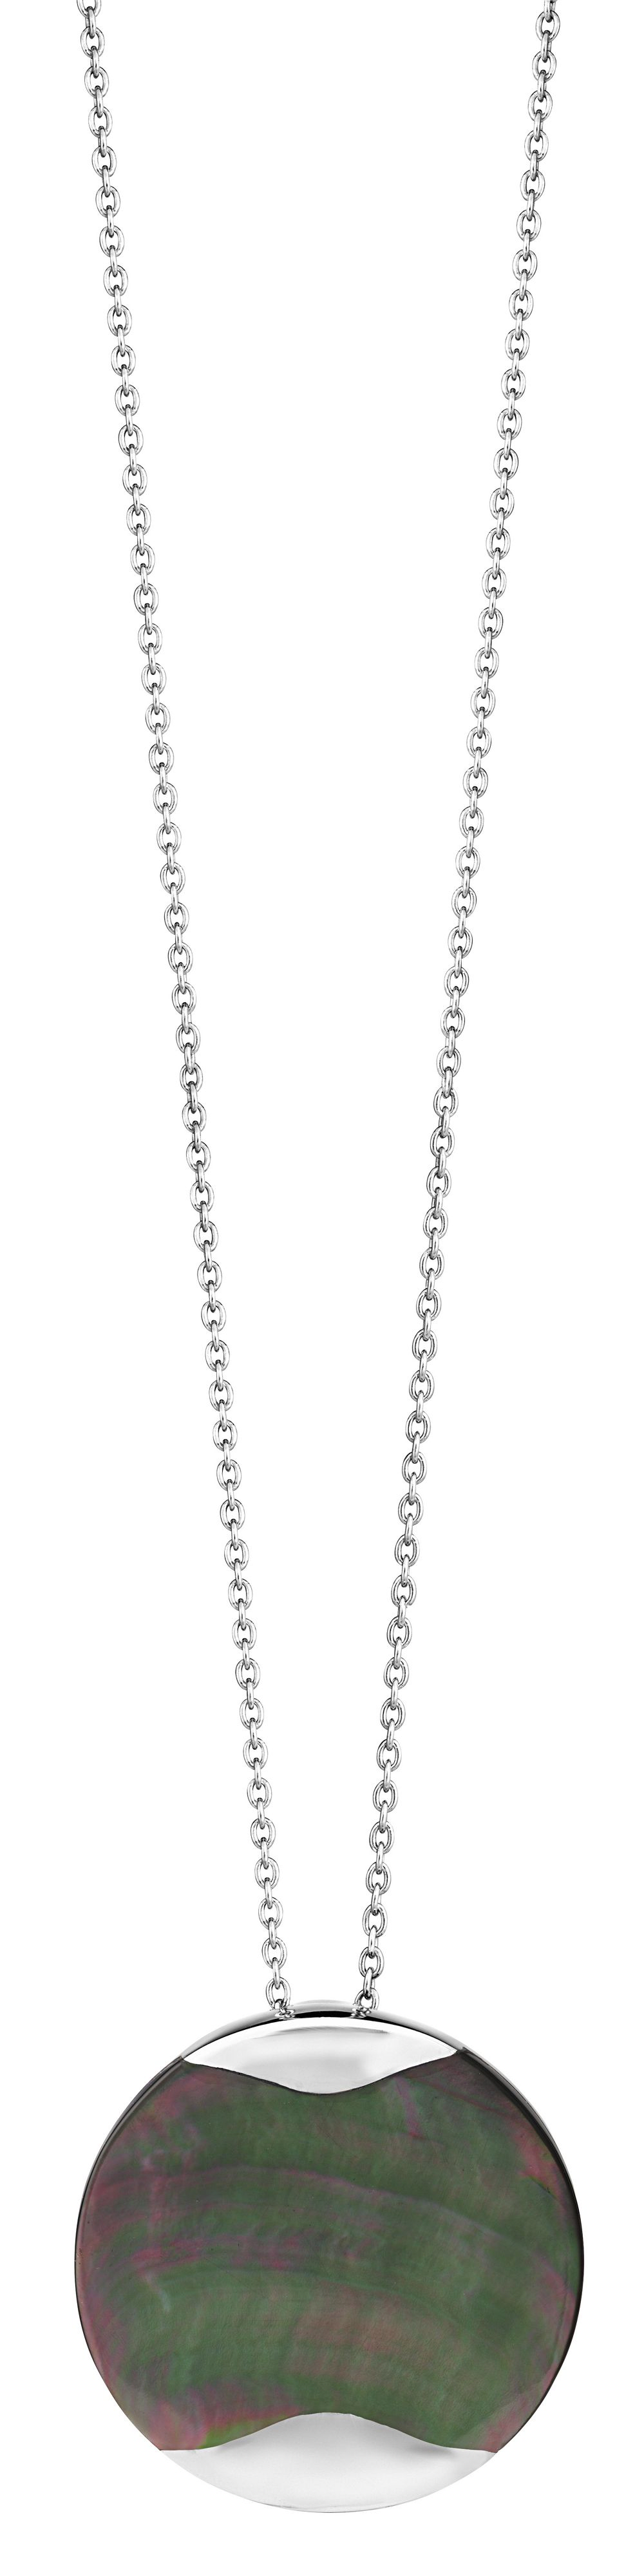 Jersey Pearl Jersey Pearl Dune Pendant, N/A